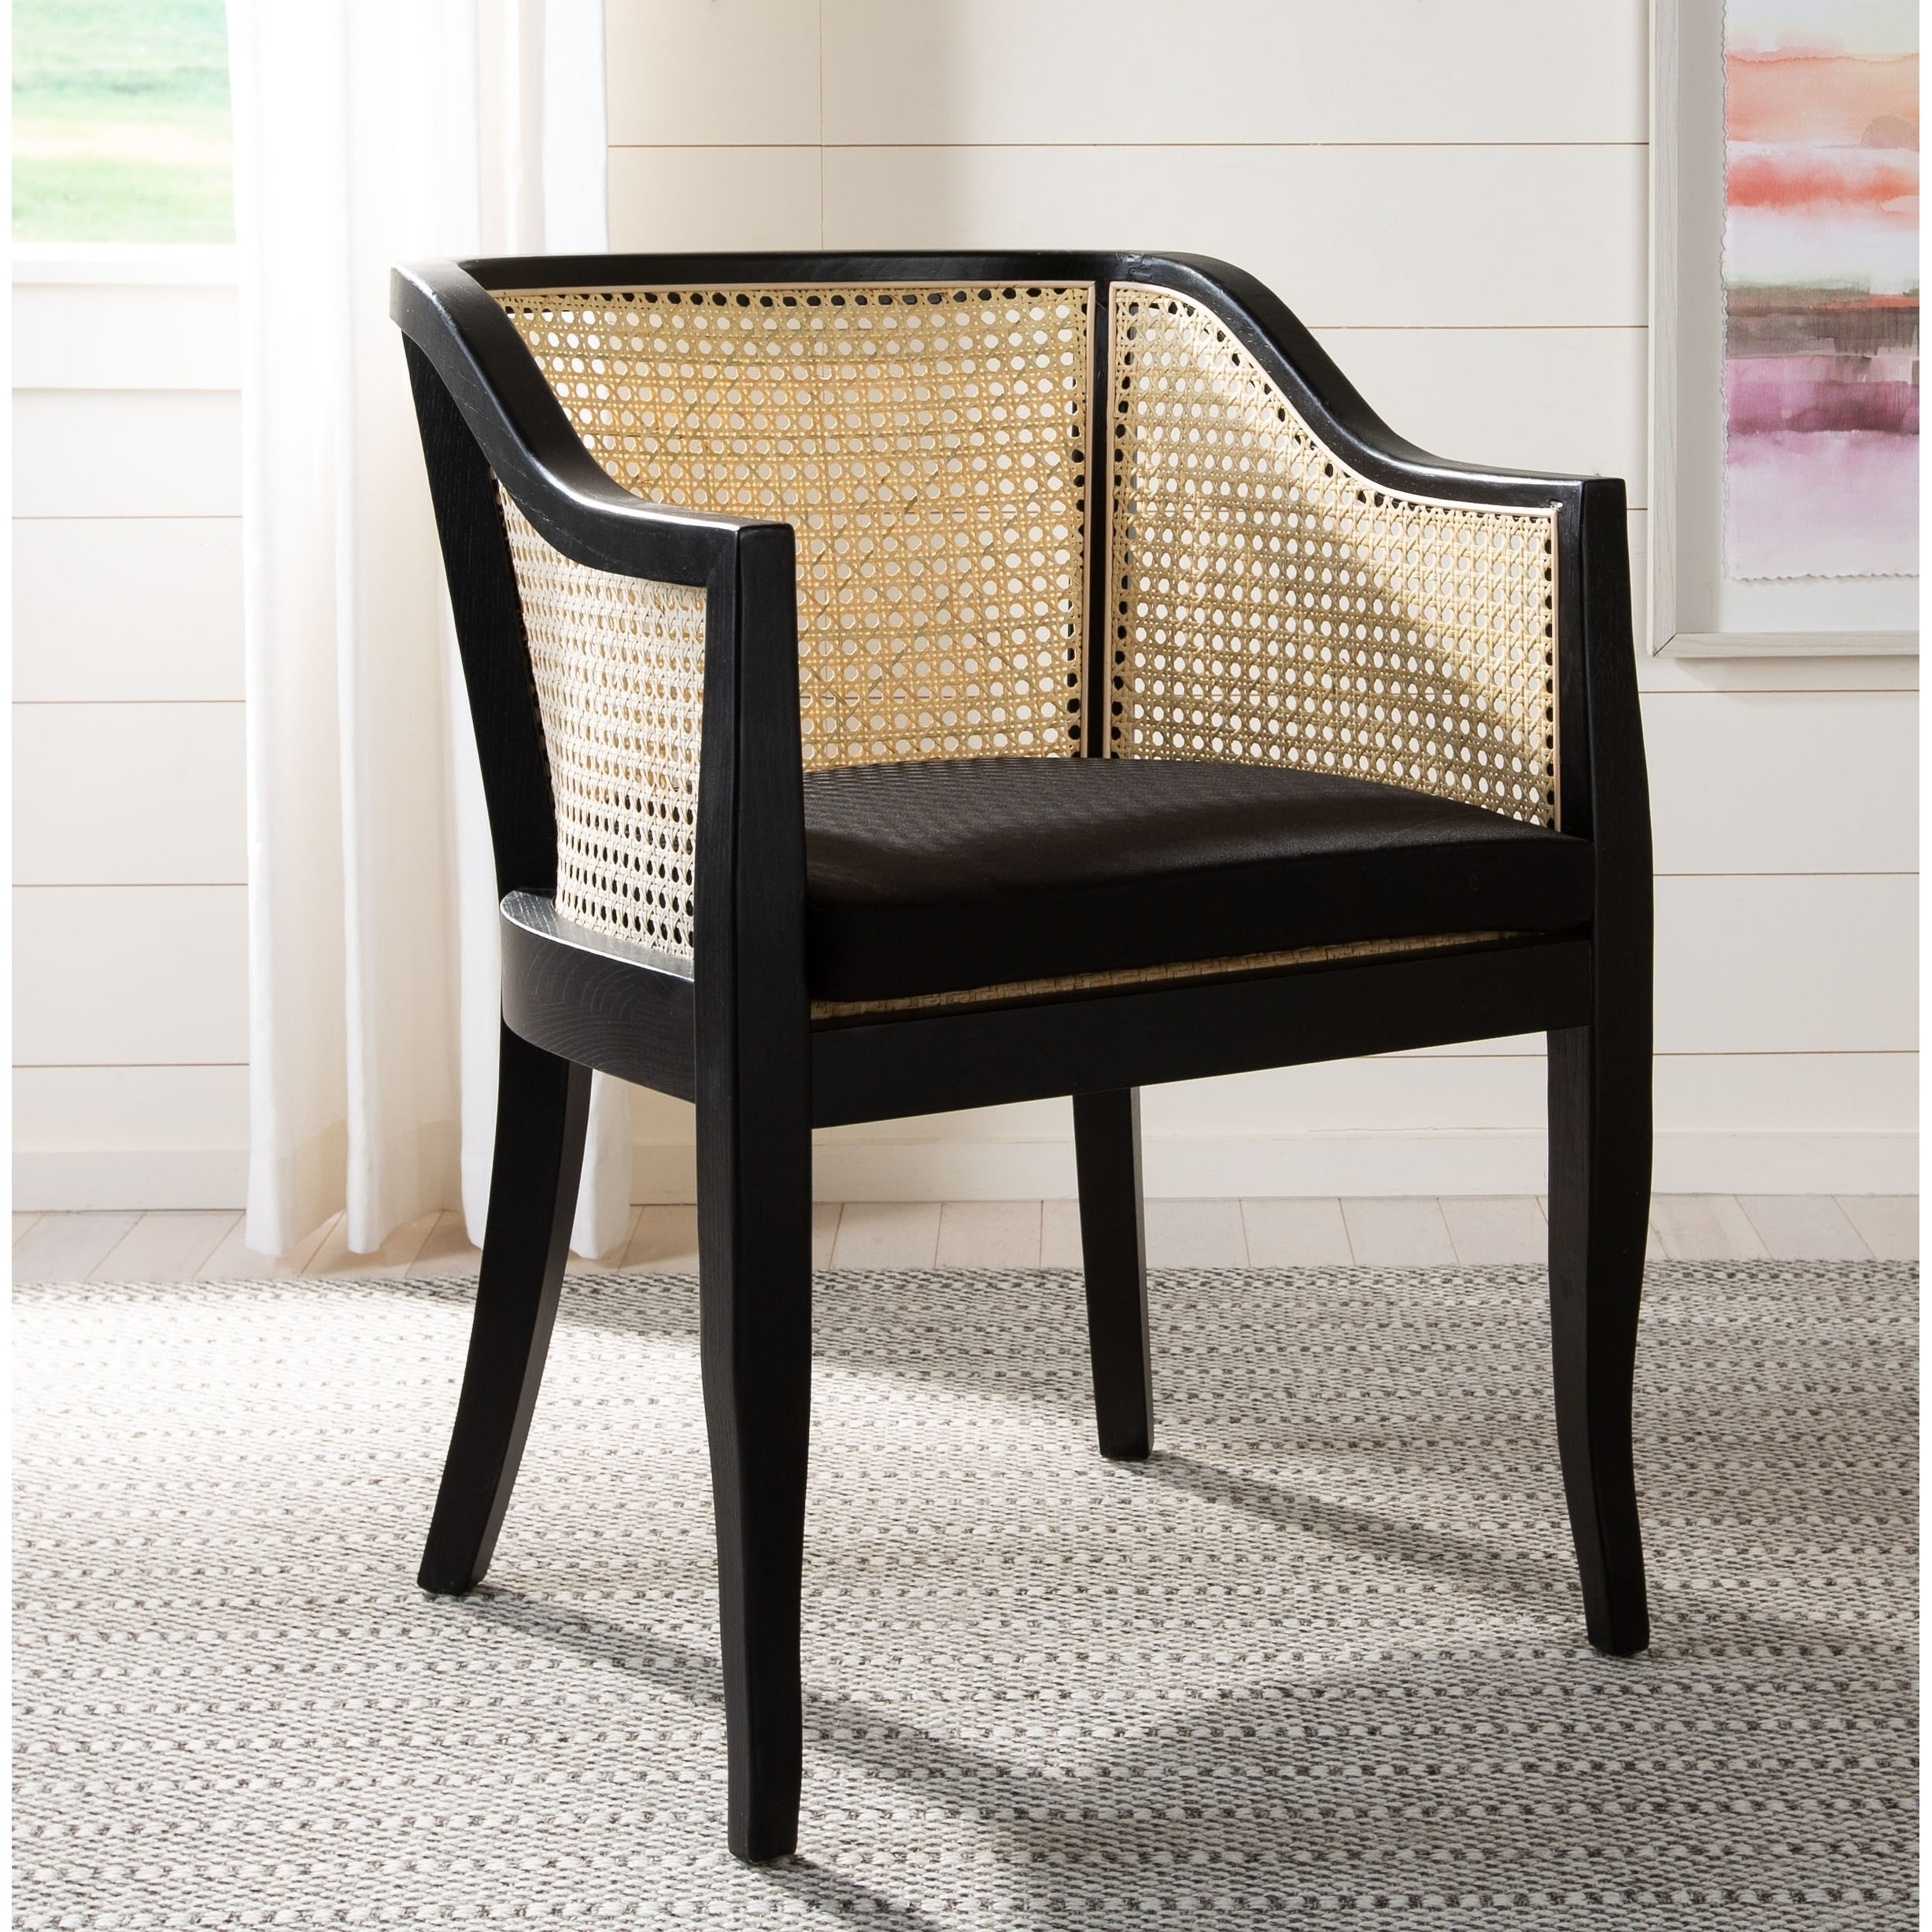 Brilliant Safavieh Rina Cane Dining Chair Ncnpc Chair Design For Home Ncnpcorg